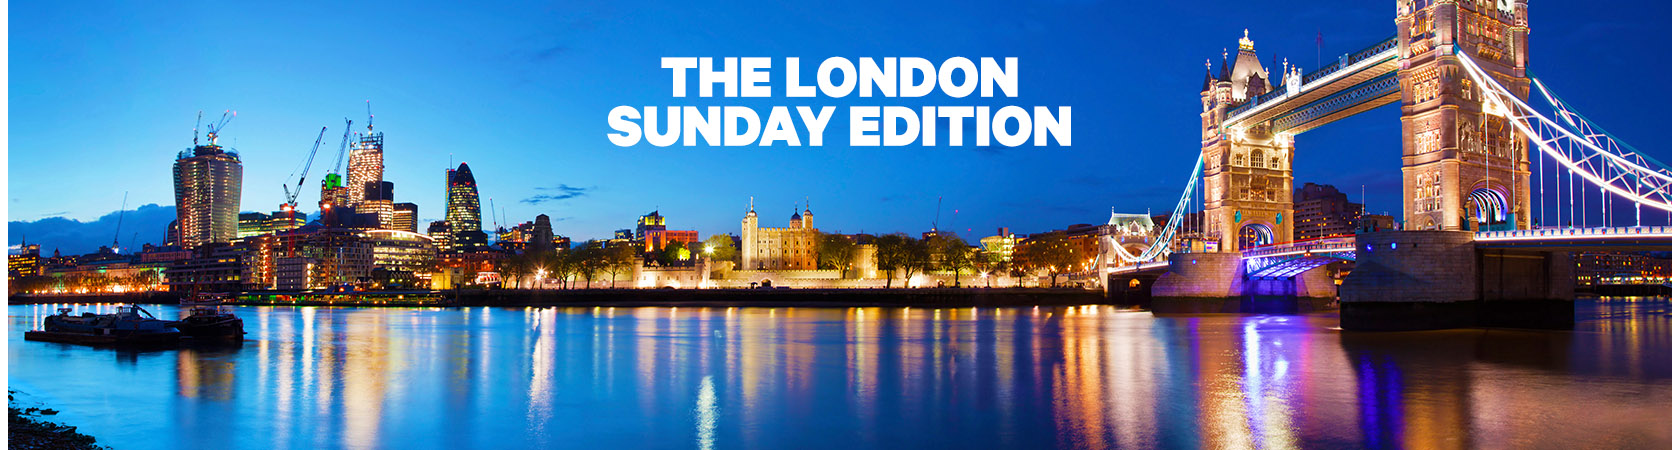 The London Sunday Edition